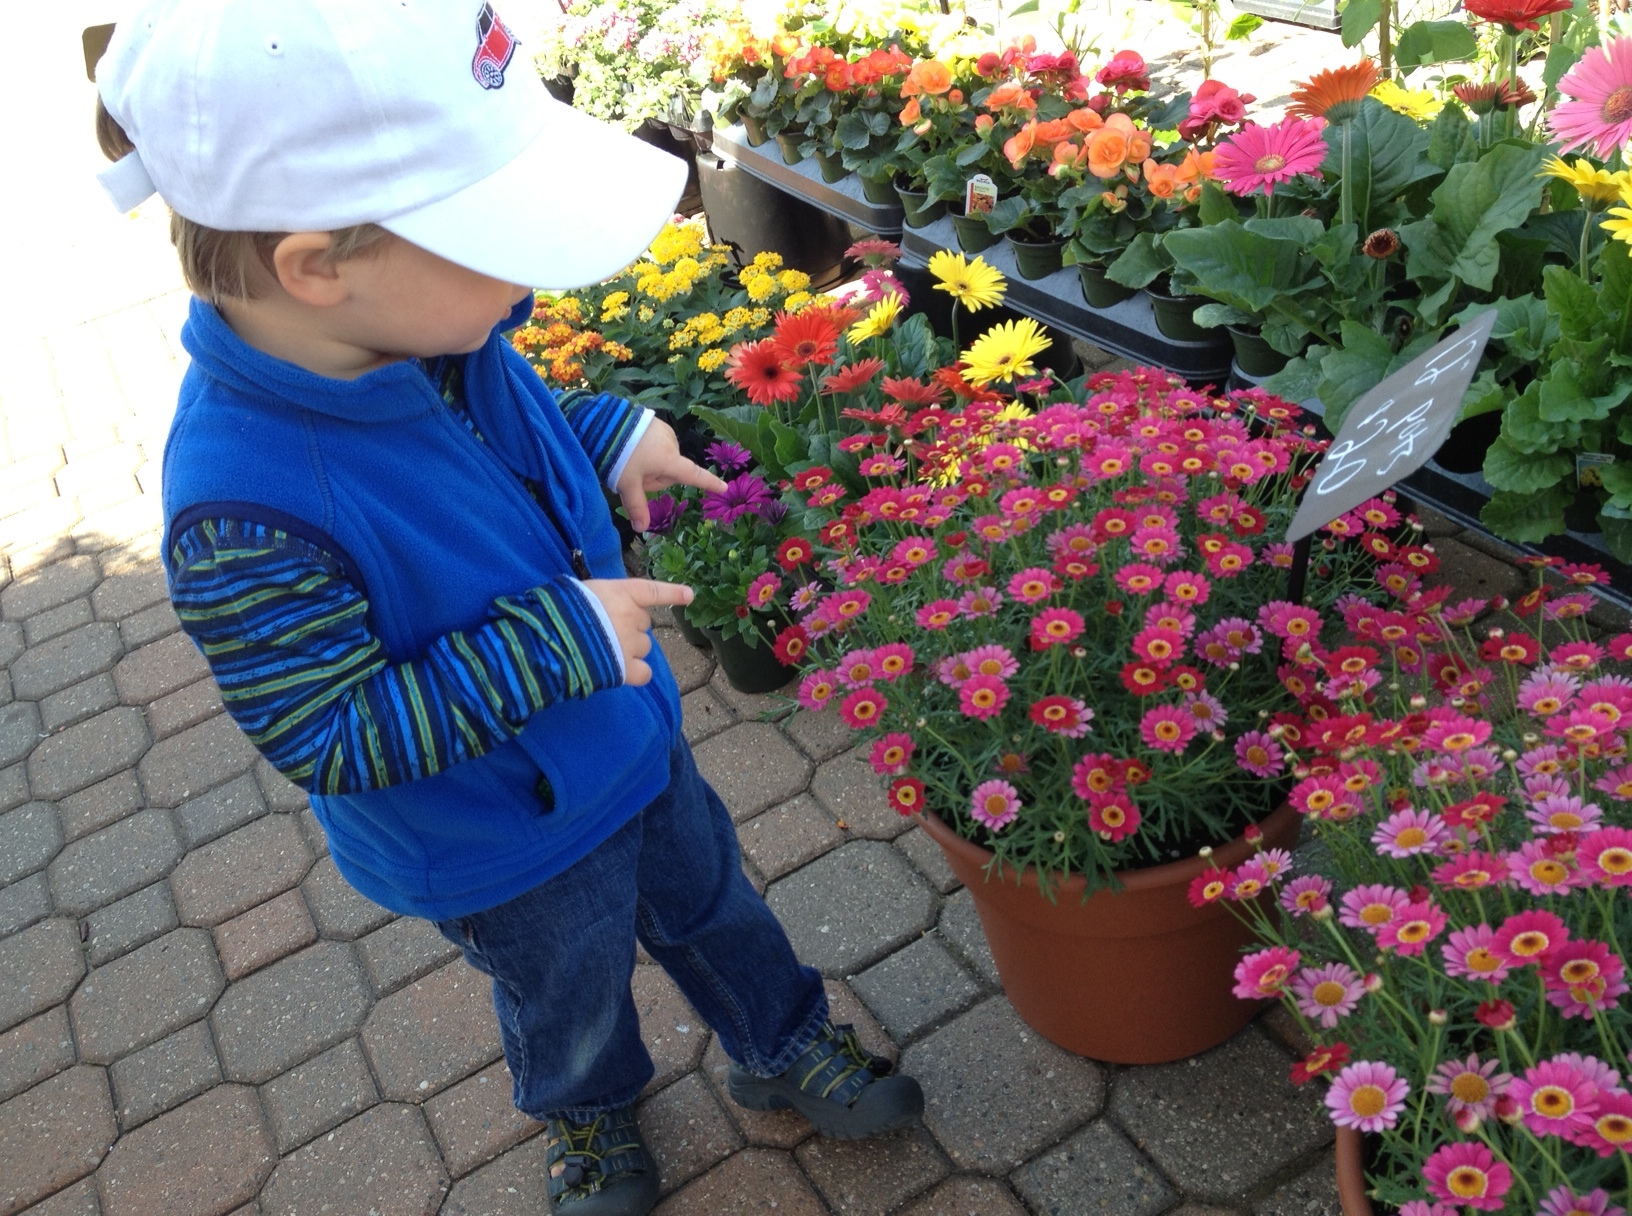 this was actually taken the other day, but h was up to the same delightful antics at today's market--pointing out all of the beautiful flowers and exploring to his heart's content. if anyone can tell me what those little pink beauties are, i'd be so grateful...love them and want them to fill up the yard!